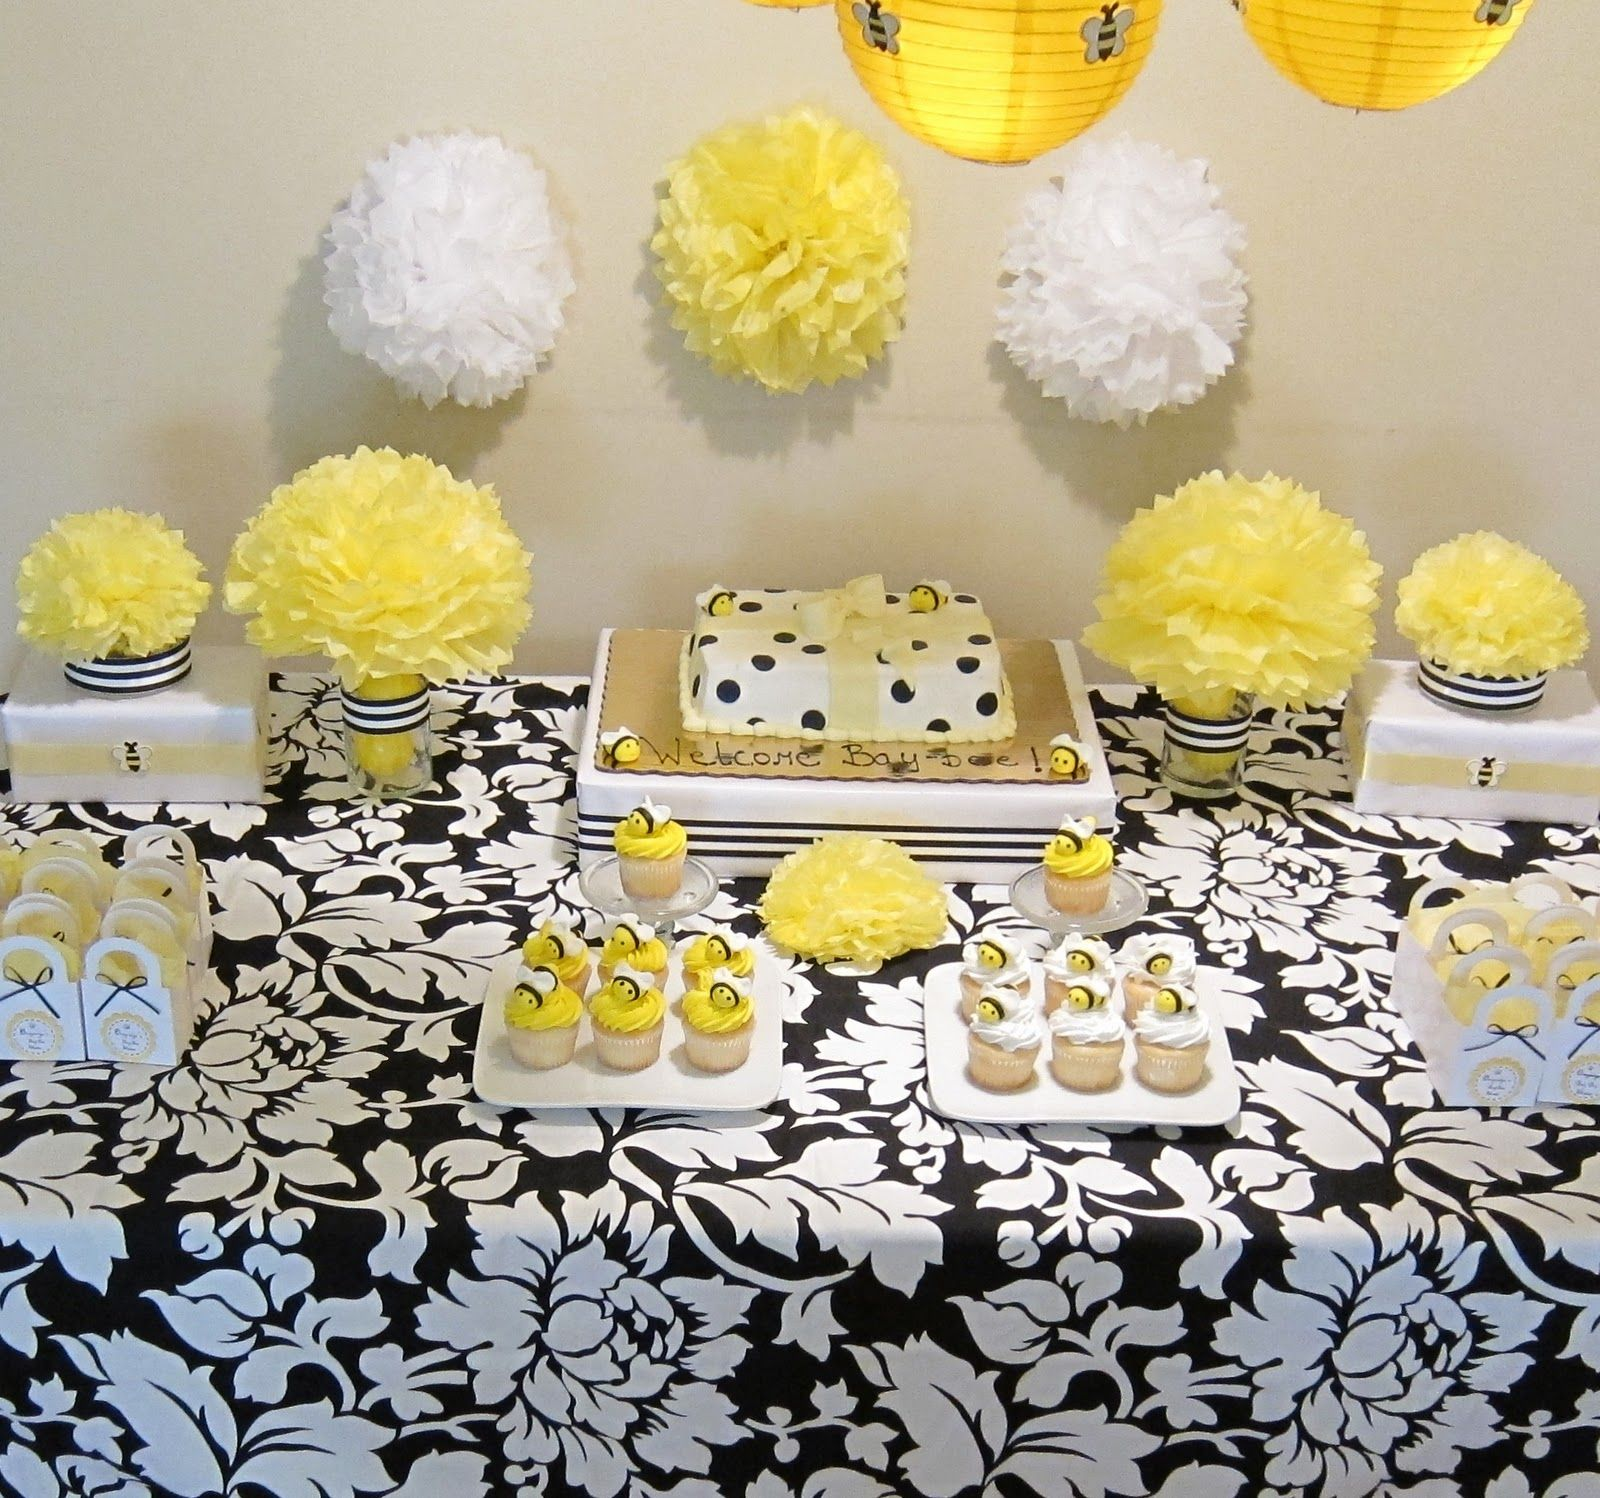 Bumble Bee Baby Shower Decorations | SimplyIced Party Details